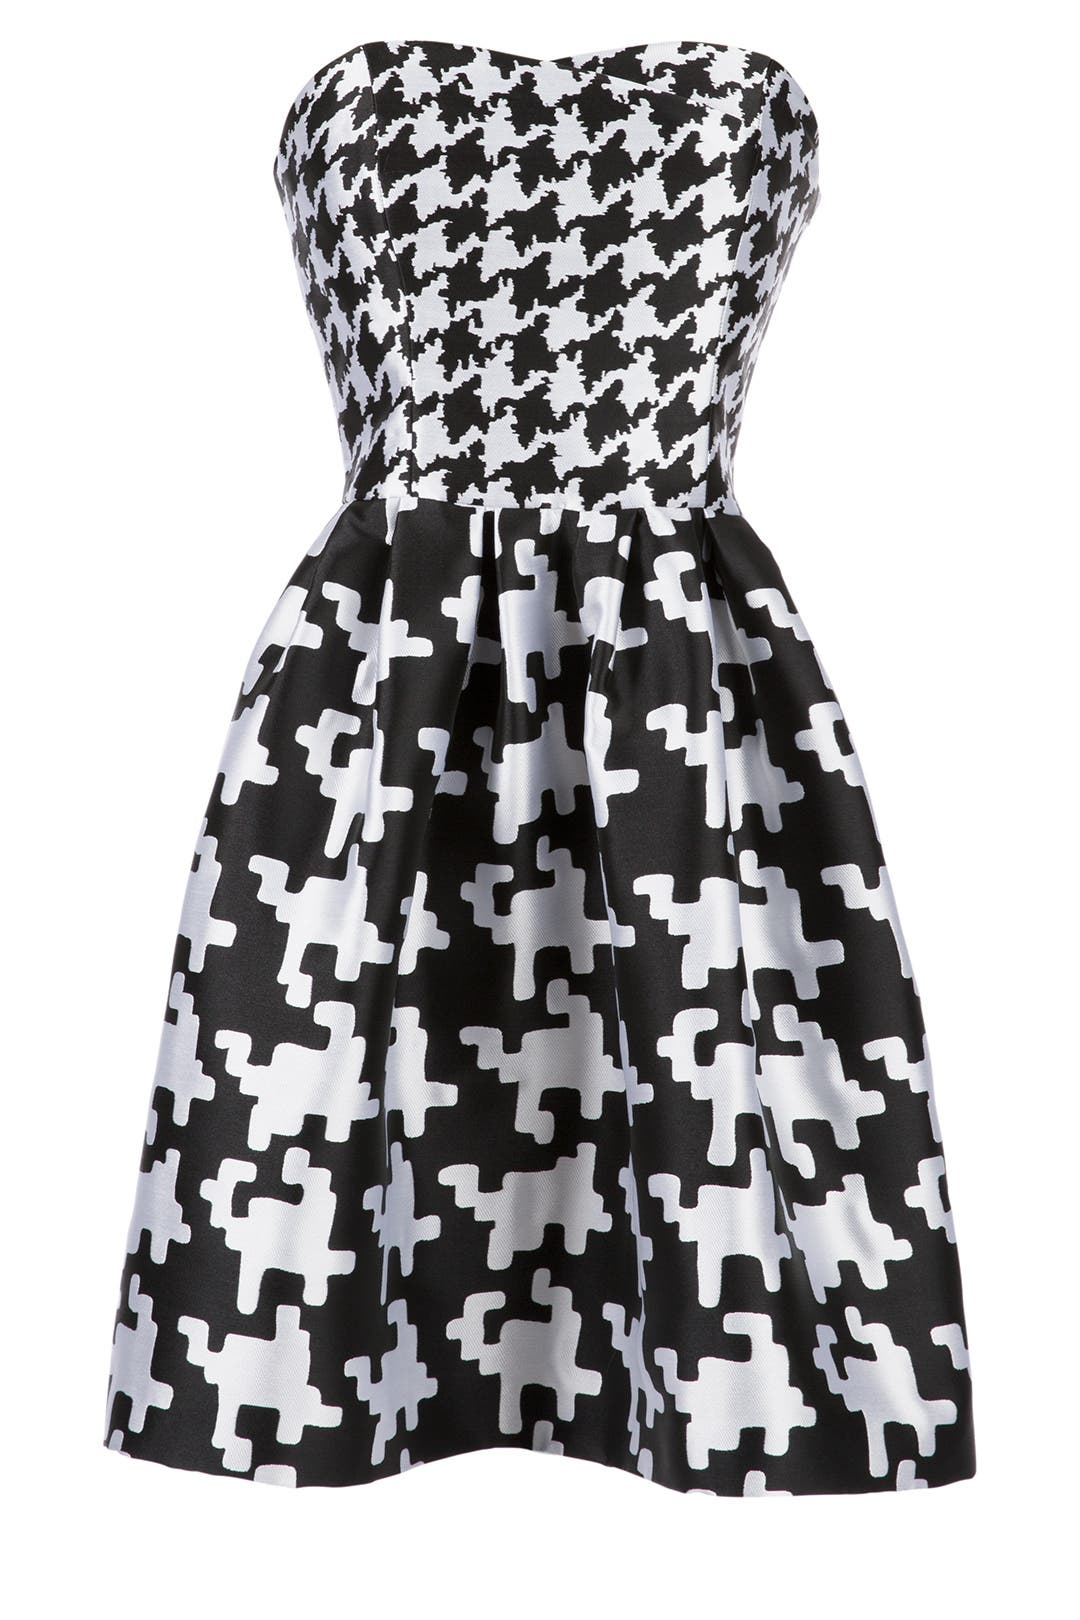 Houndstooth Dress by BOUTIQUE MOSCHINO for $164 | Rent the Runway